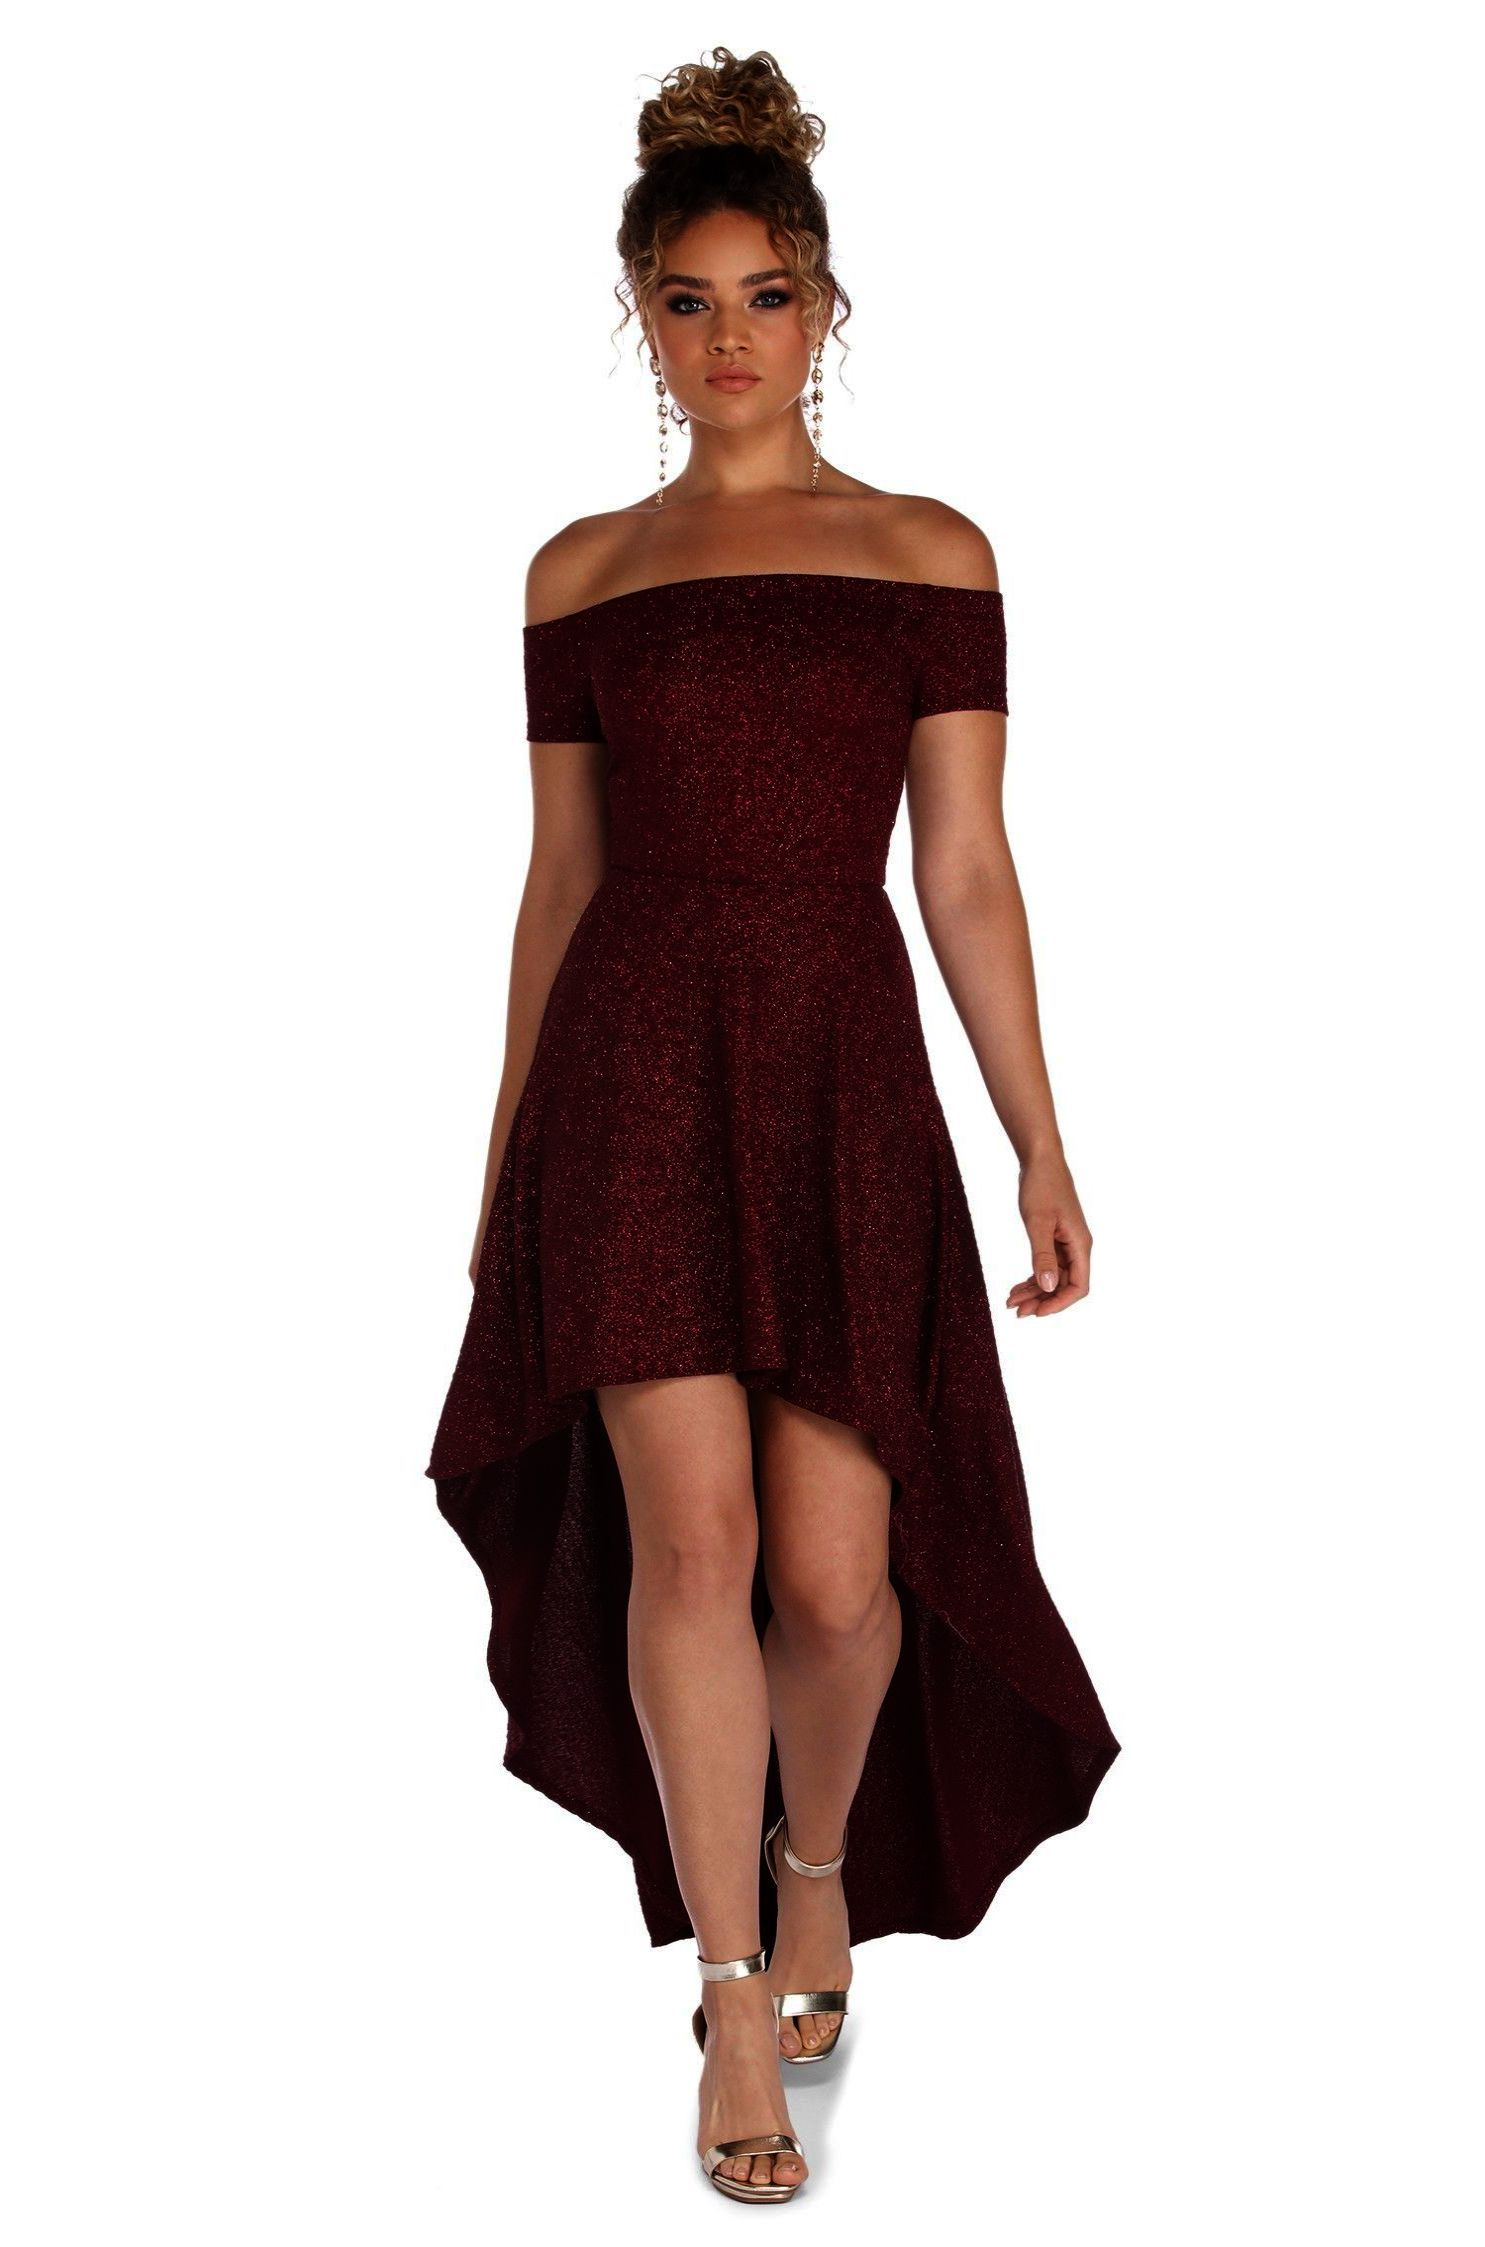 Dress Fashion Malaysia. Best Stores For Formal Dresses